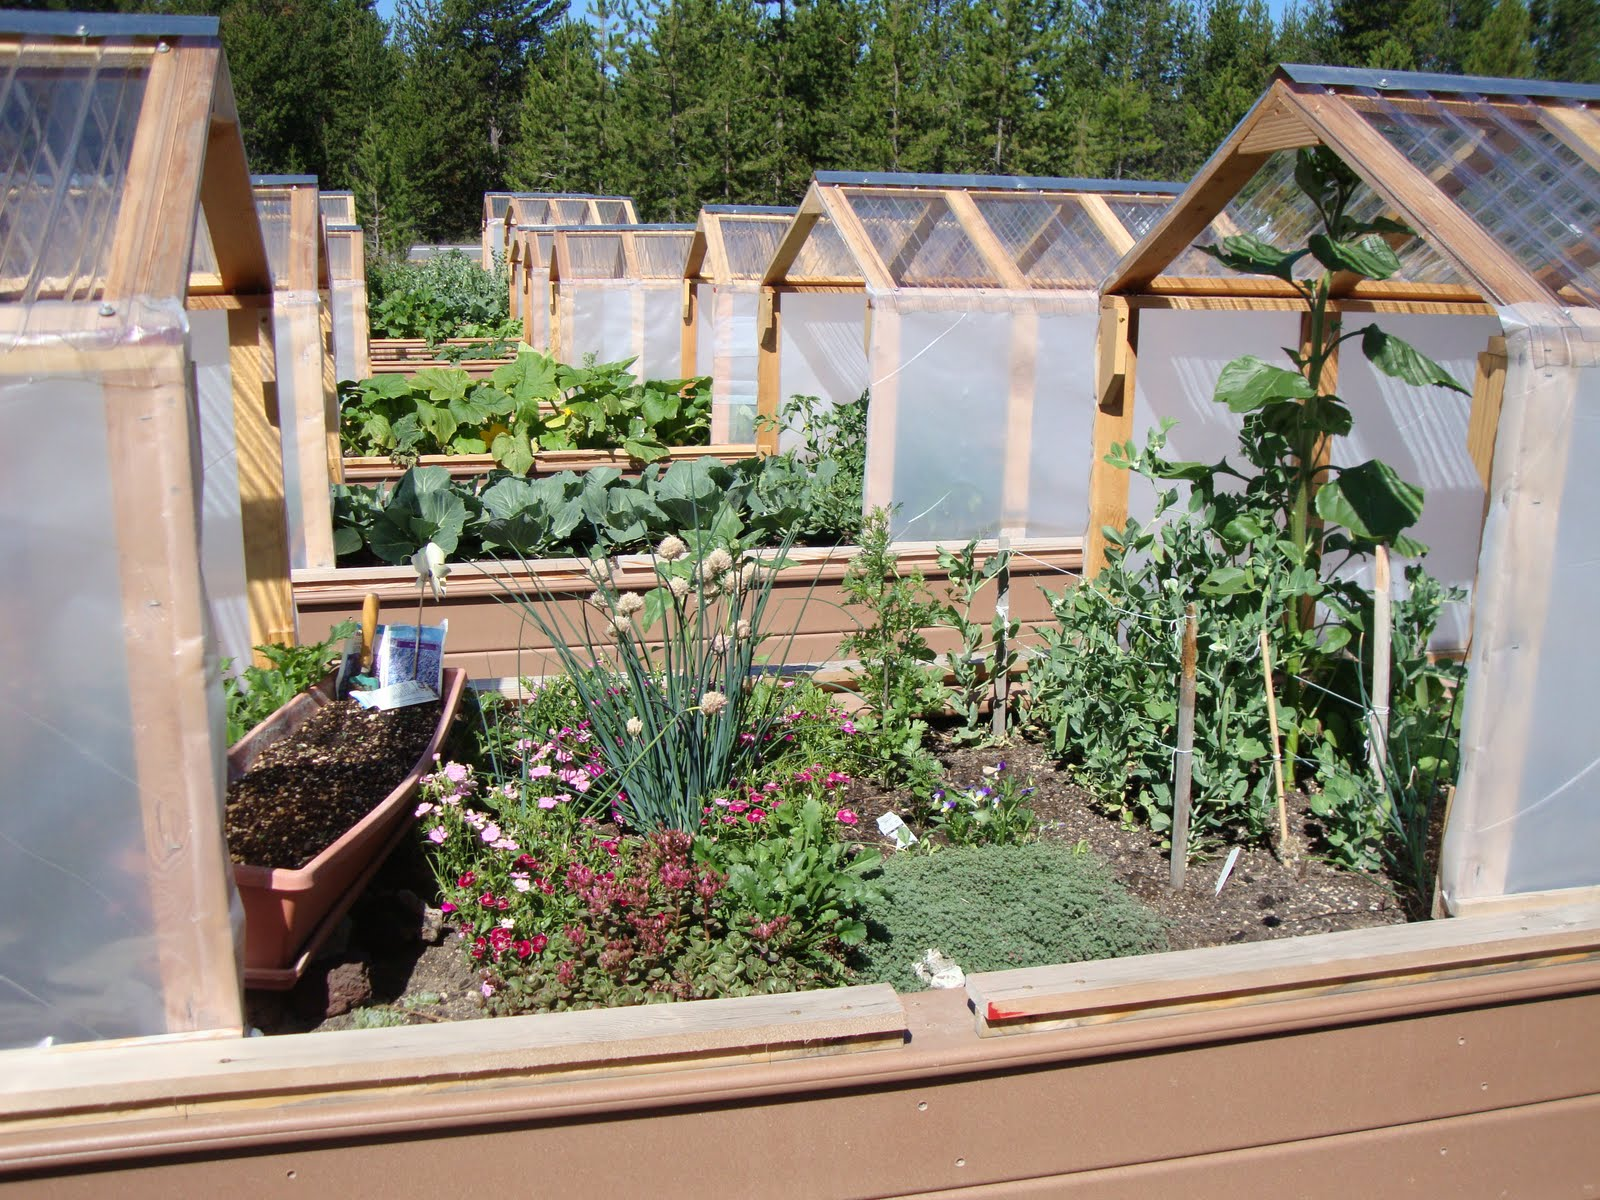 On Top Of Raised Beds